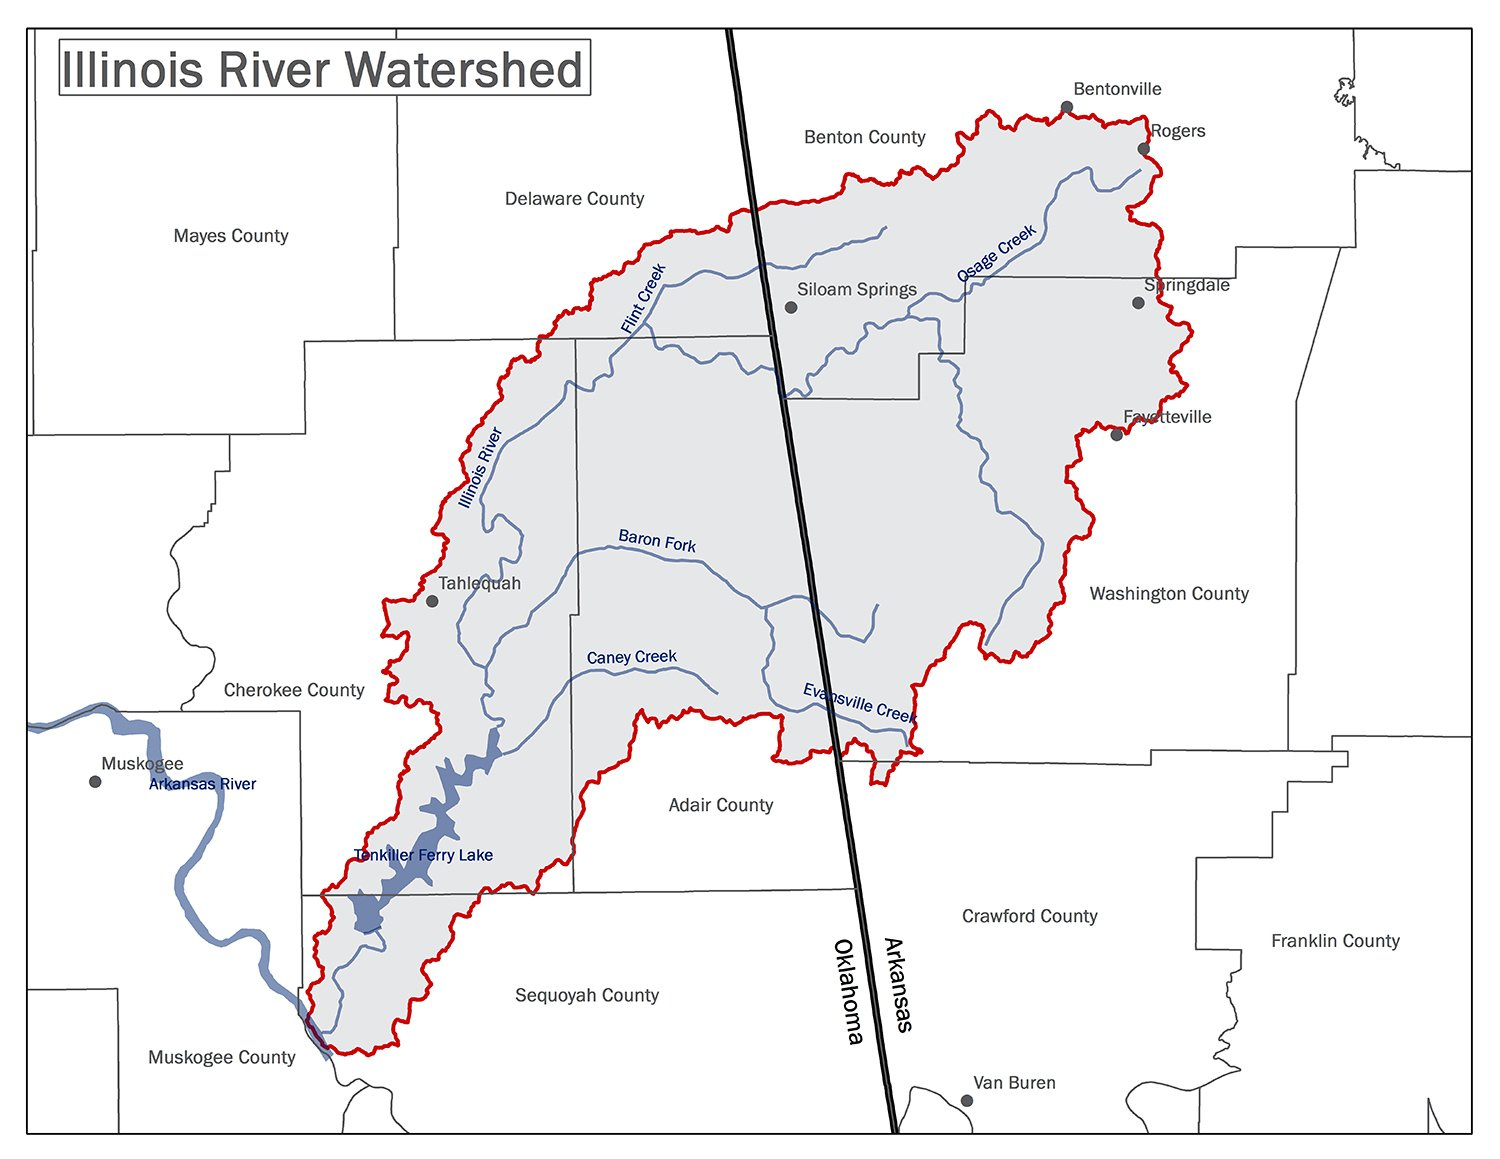 Illinois River Watershed Map